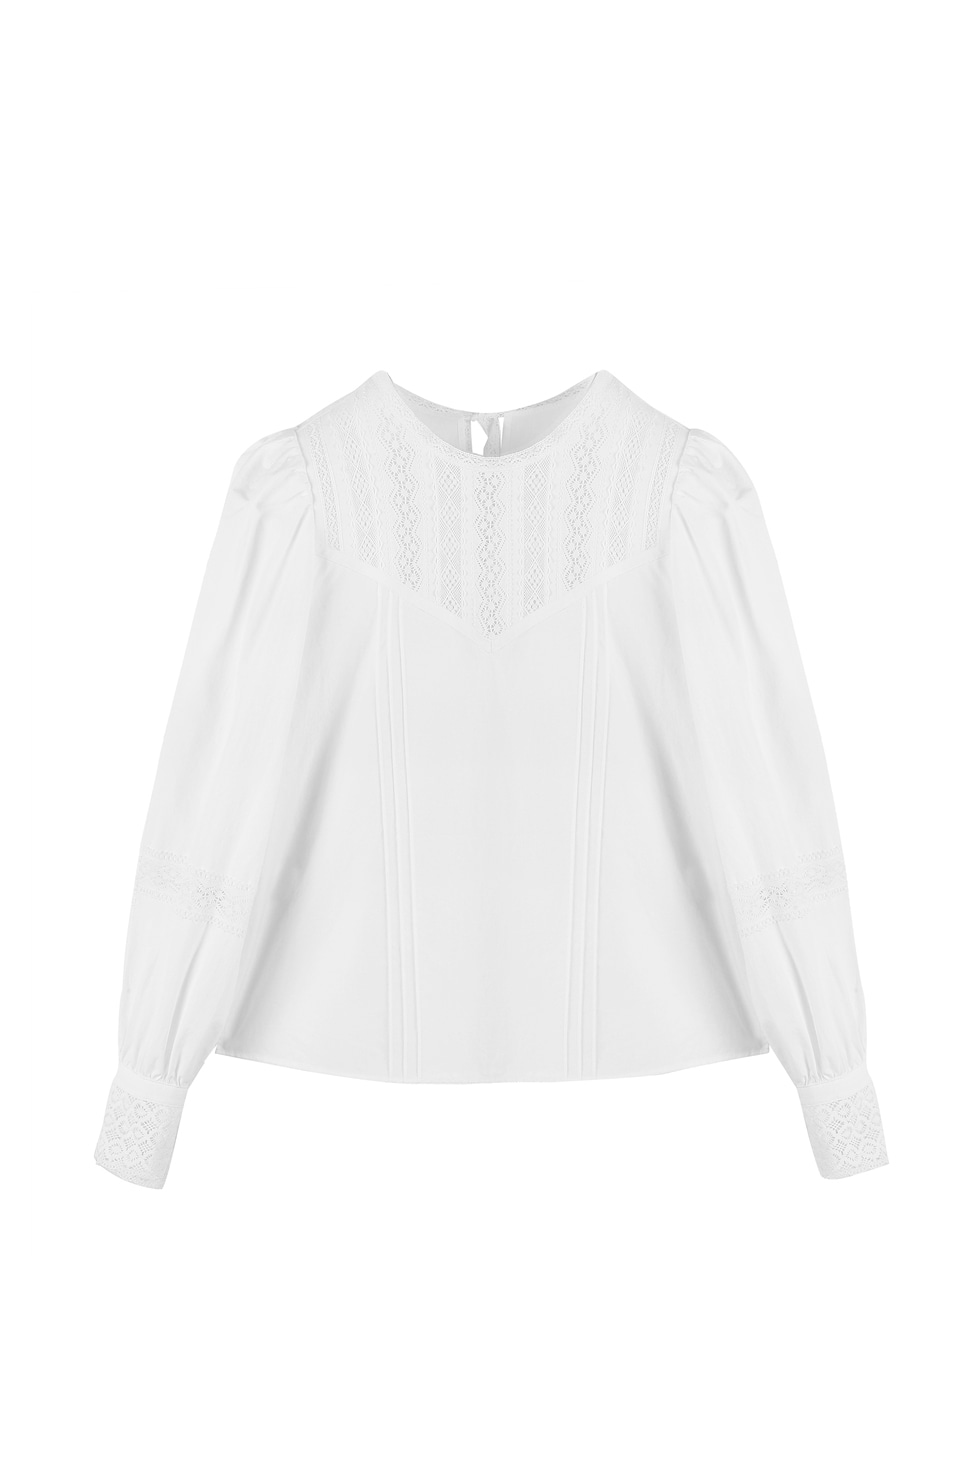 LACE TAPE PUFF BLOUSE - WHITE